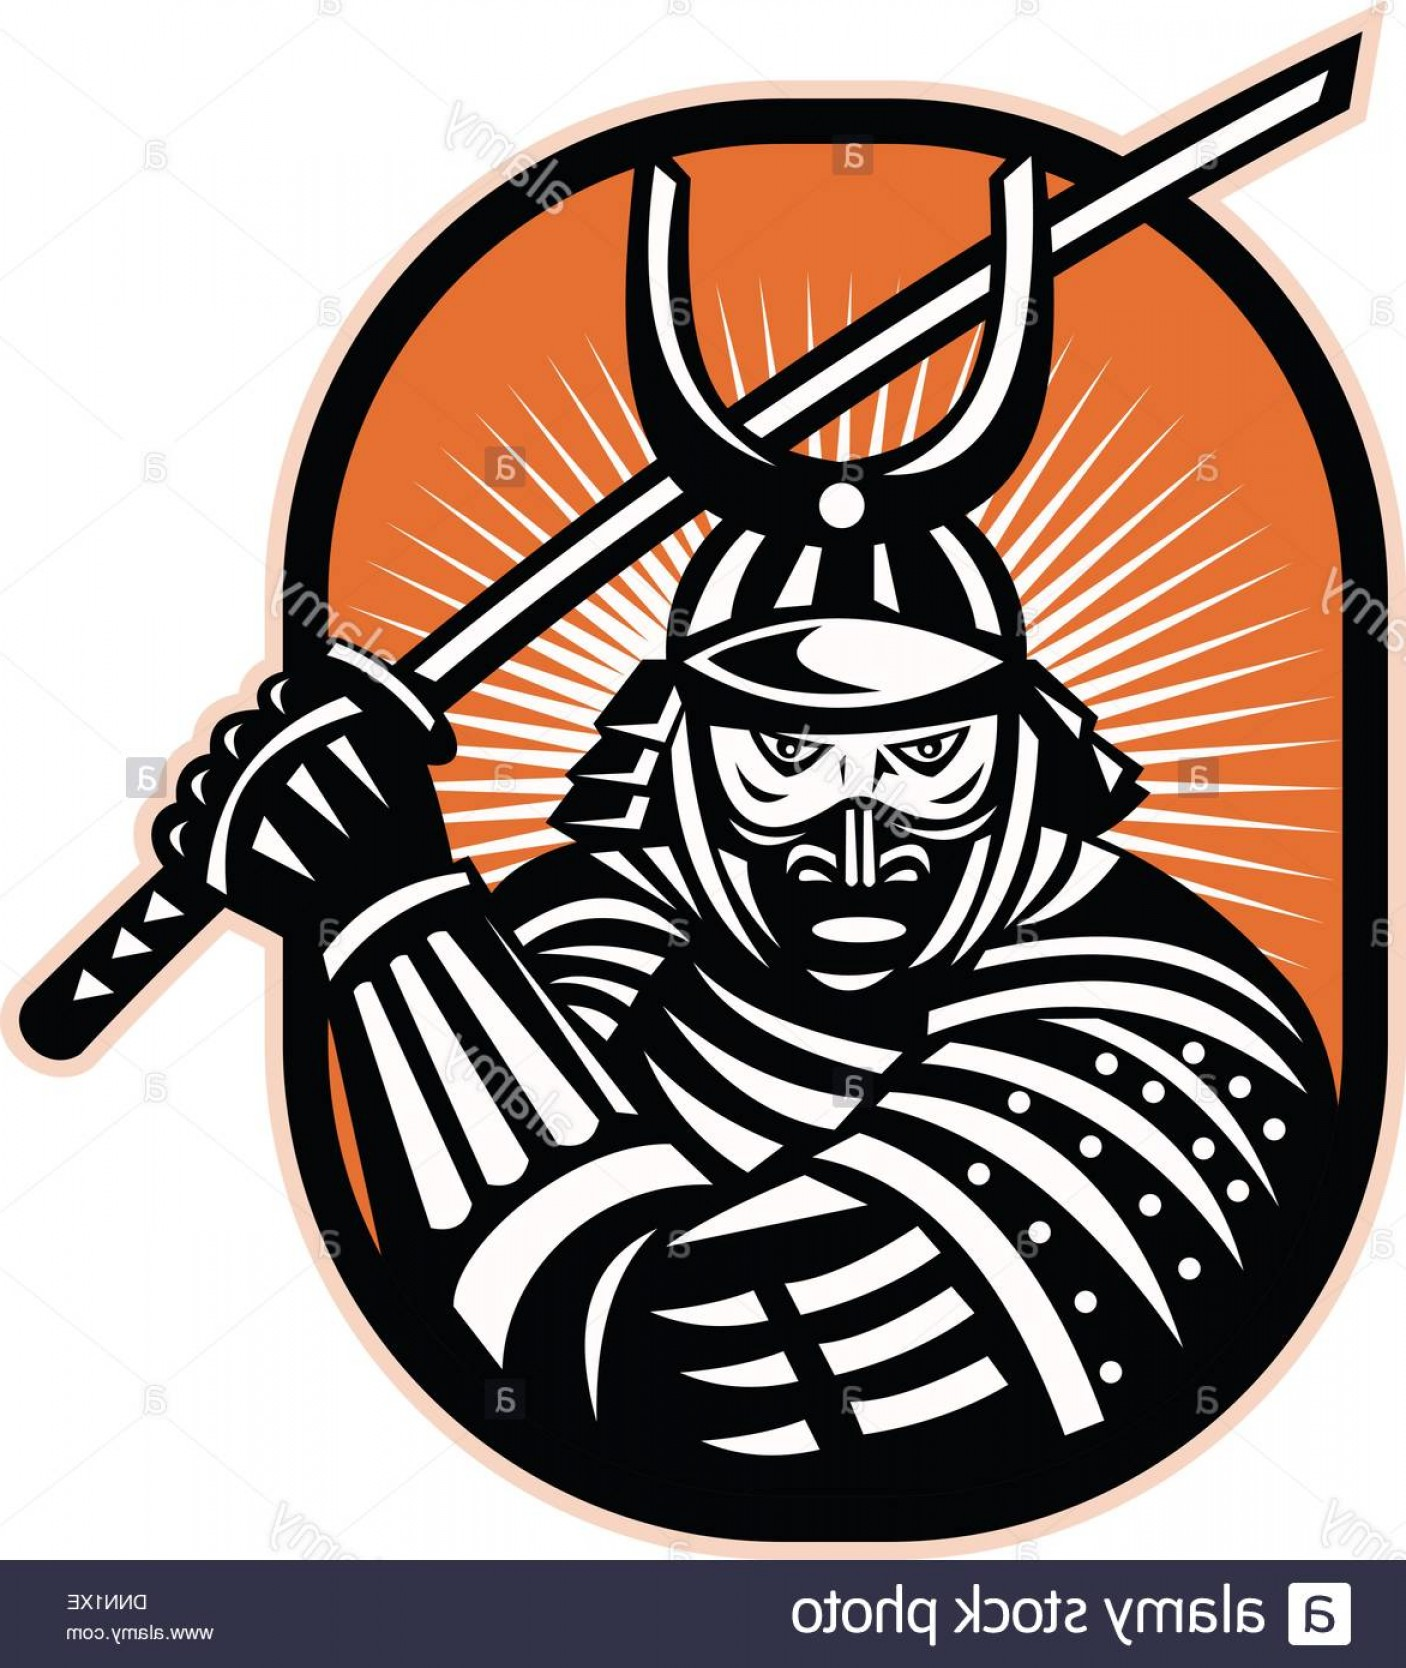 Samurai Warrior Vector: Stock Photo Retro Illustration Of A Samurai Warrior Brandishing Katana Sword Facing